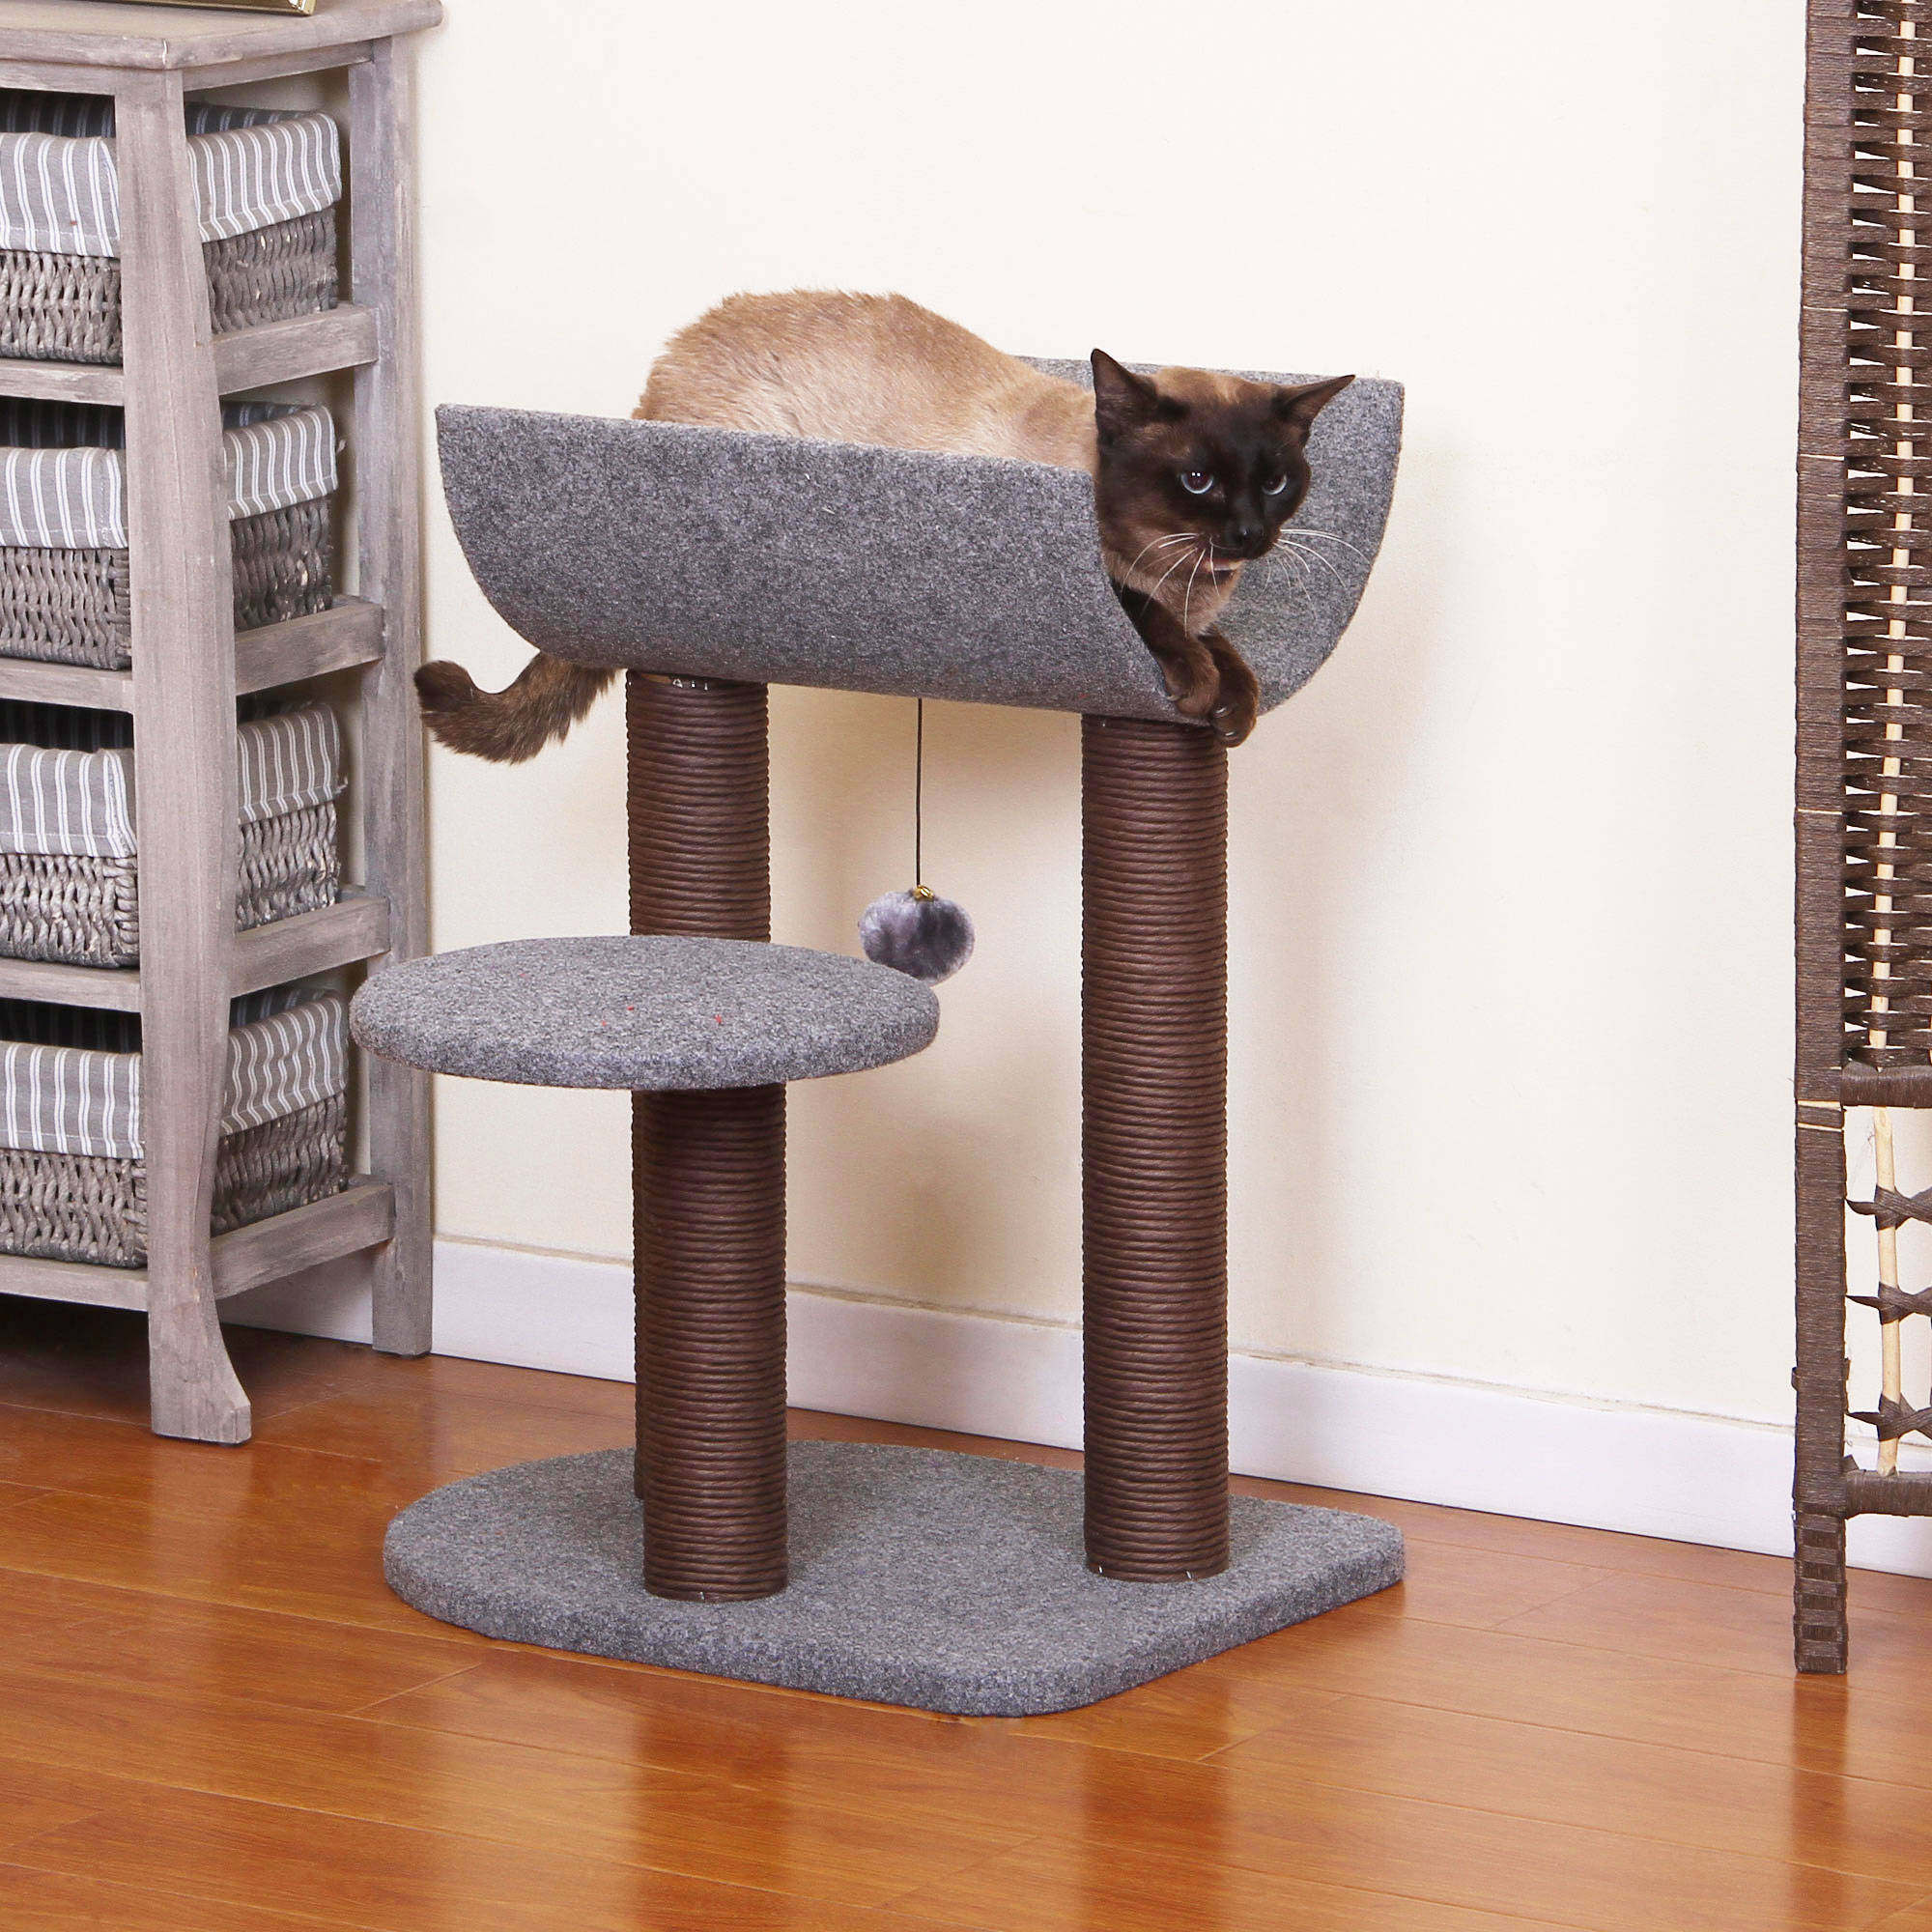 PetPals Group Cradle Chocolate and Grey Color Cat Tree with Curved Napping Perch by PetPals Group Inc